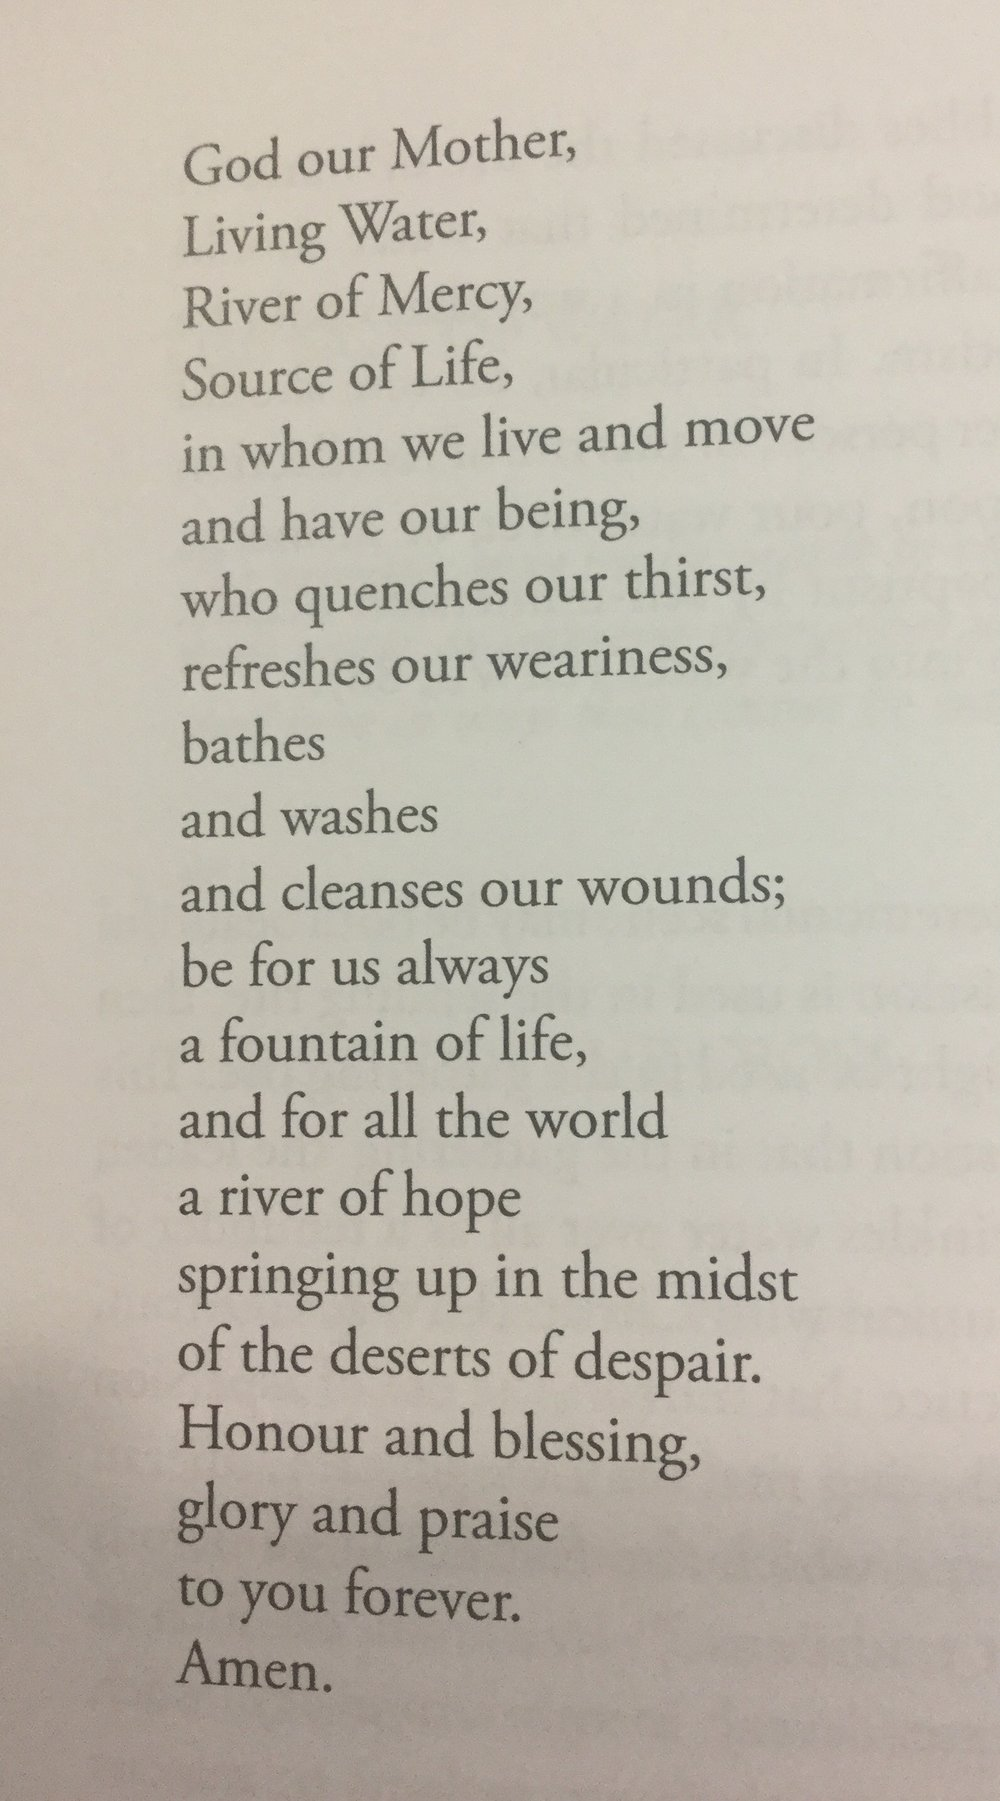 Originally found in Mirian Therese Winter,   WomanPrayer, WomanSong: Resources for Ritual (  New York: Crossroad, 1987), this prayer over the waters of the font is also found in the United Church of Canada's  Celebrate God's Presence: A Book of Services  (Etebicoke, Ont.: United Church Press, 2000) and the  Uniting Church in Australia's Uniting in Worship 2  (Sydney: Uniting Church Press, 2005). (Photo of the text in  Celebrate God's Presence , by Stephen Burns.)